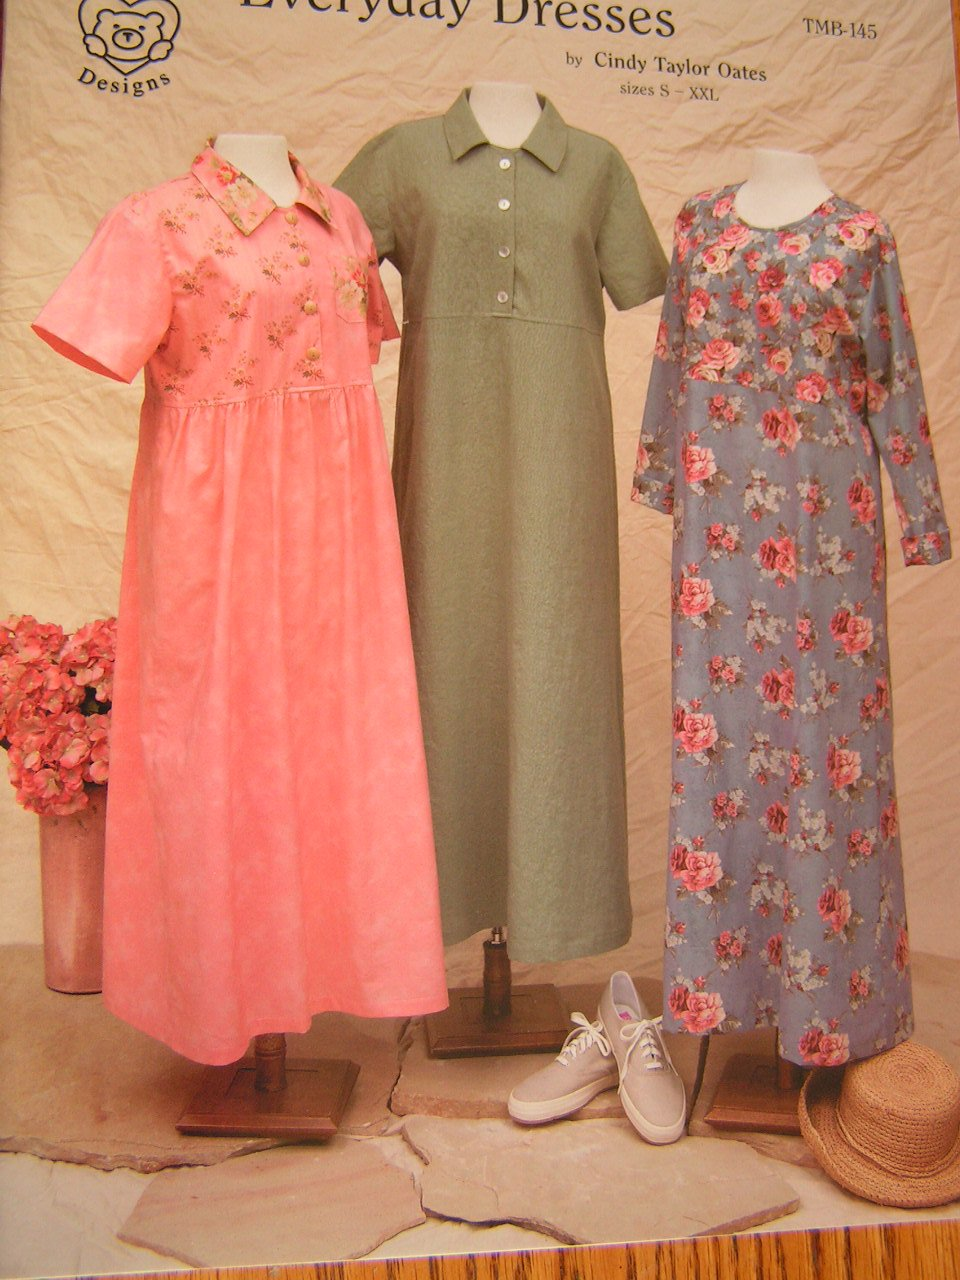 Everyday Dresses Sewing Pattern Book pdf